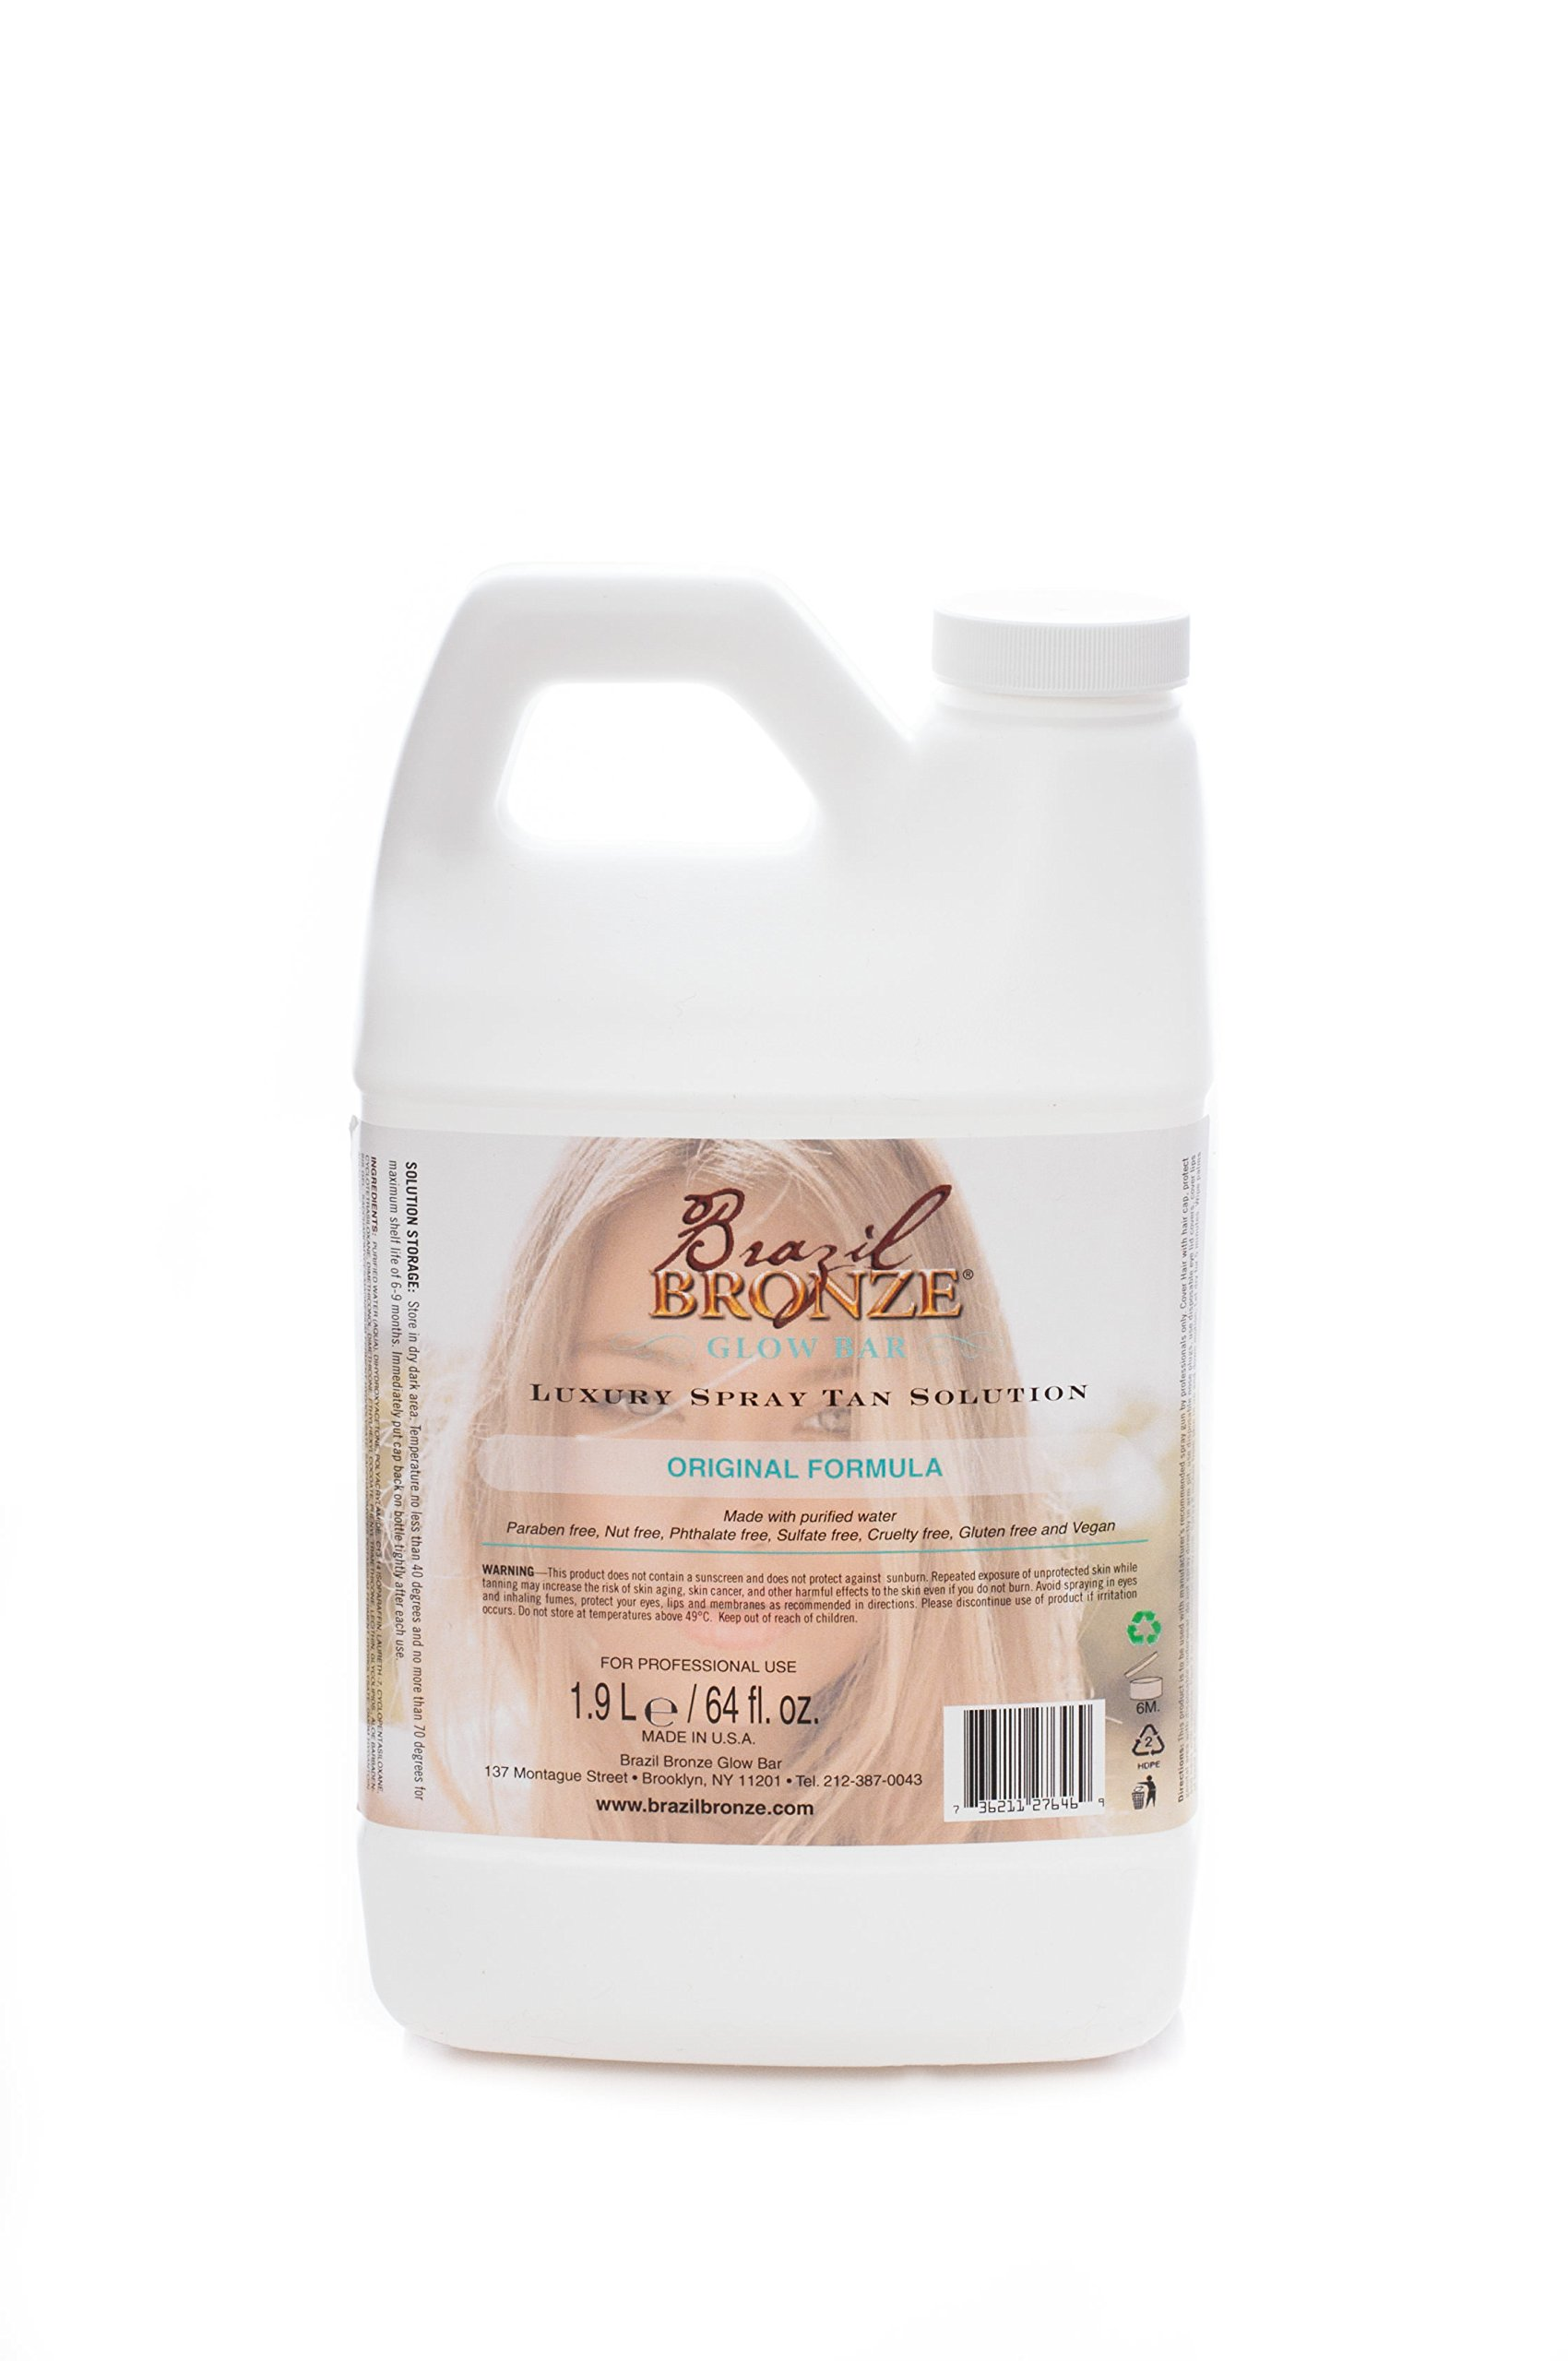 Brazil Bronze Luxury Original Spray Tan Solution/64oz